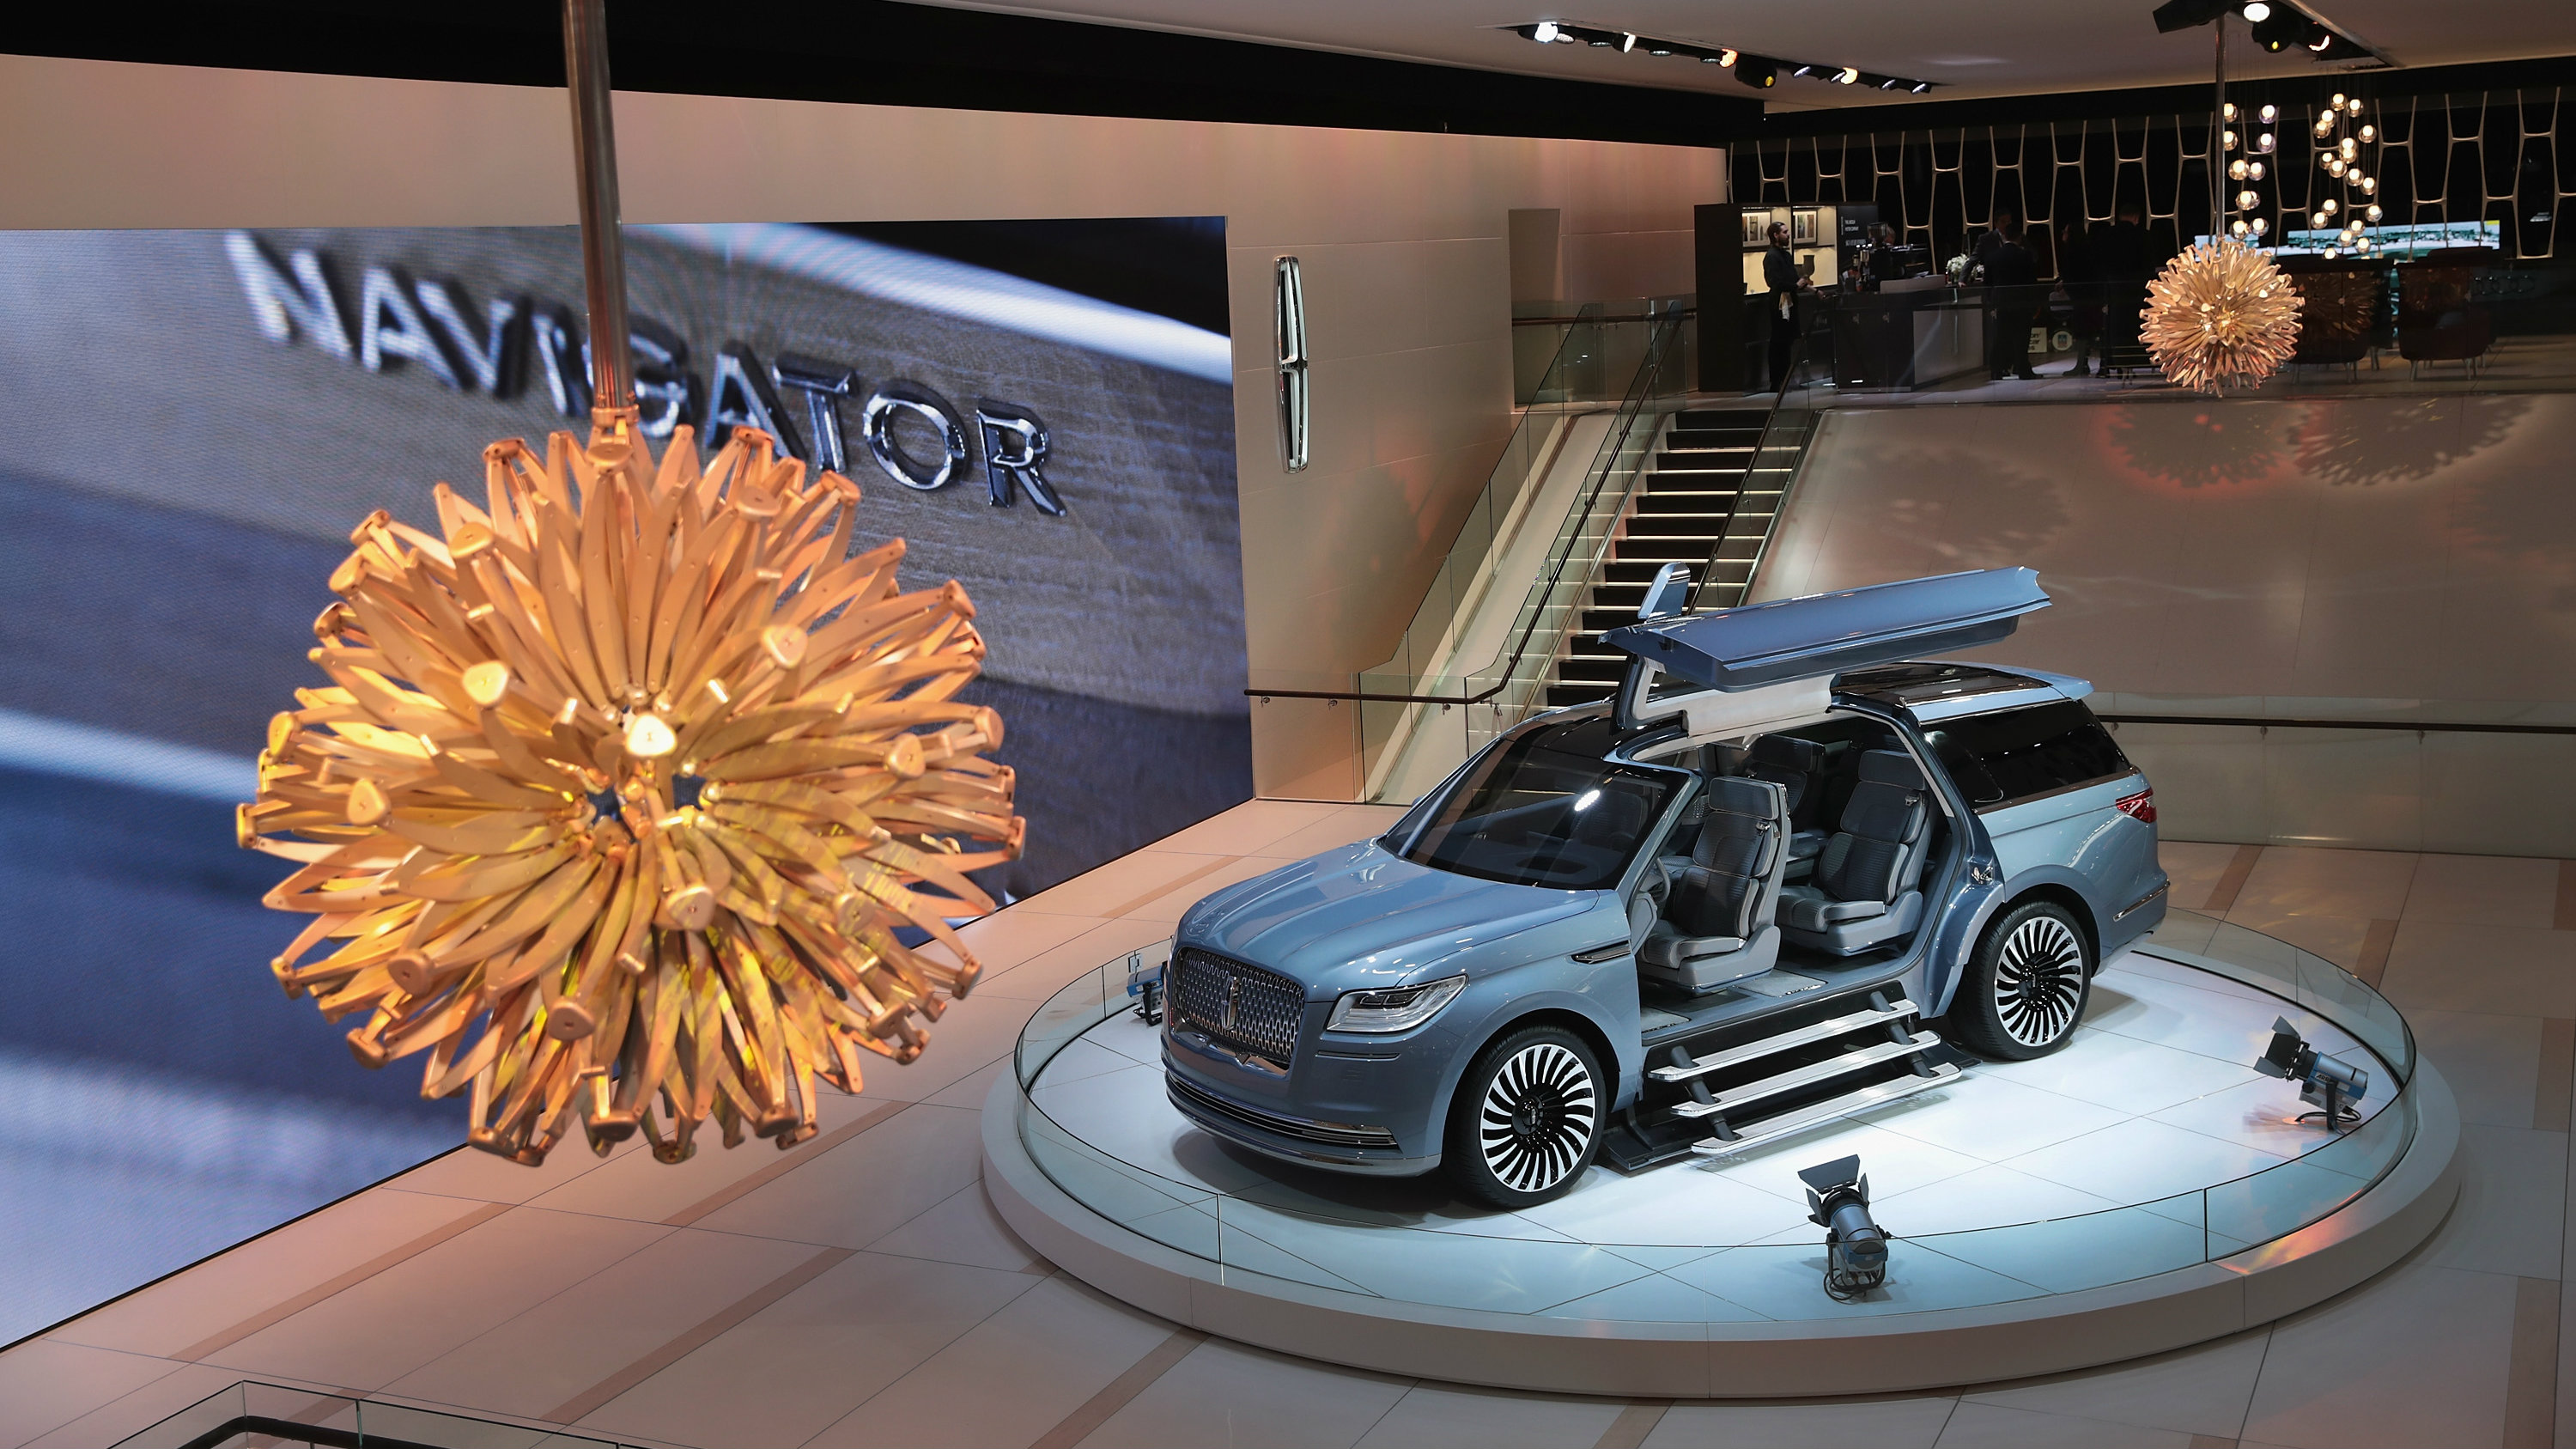 2017 Detroit auto show: Check out the door on the Lincoln...